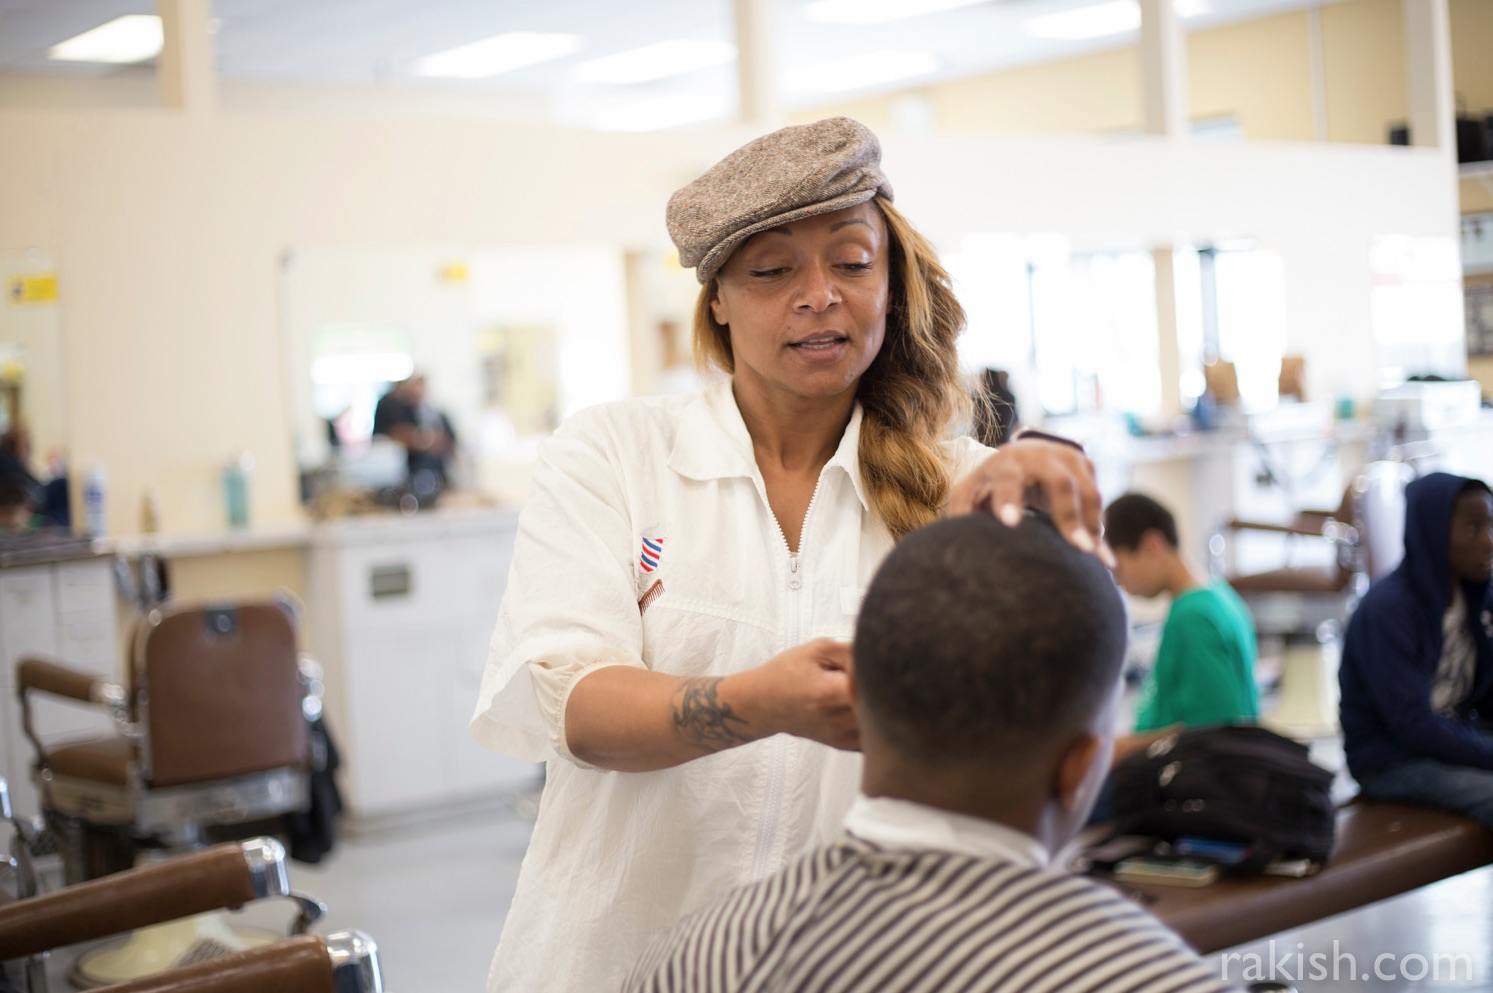 moler barber college and barber courses